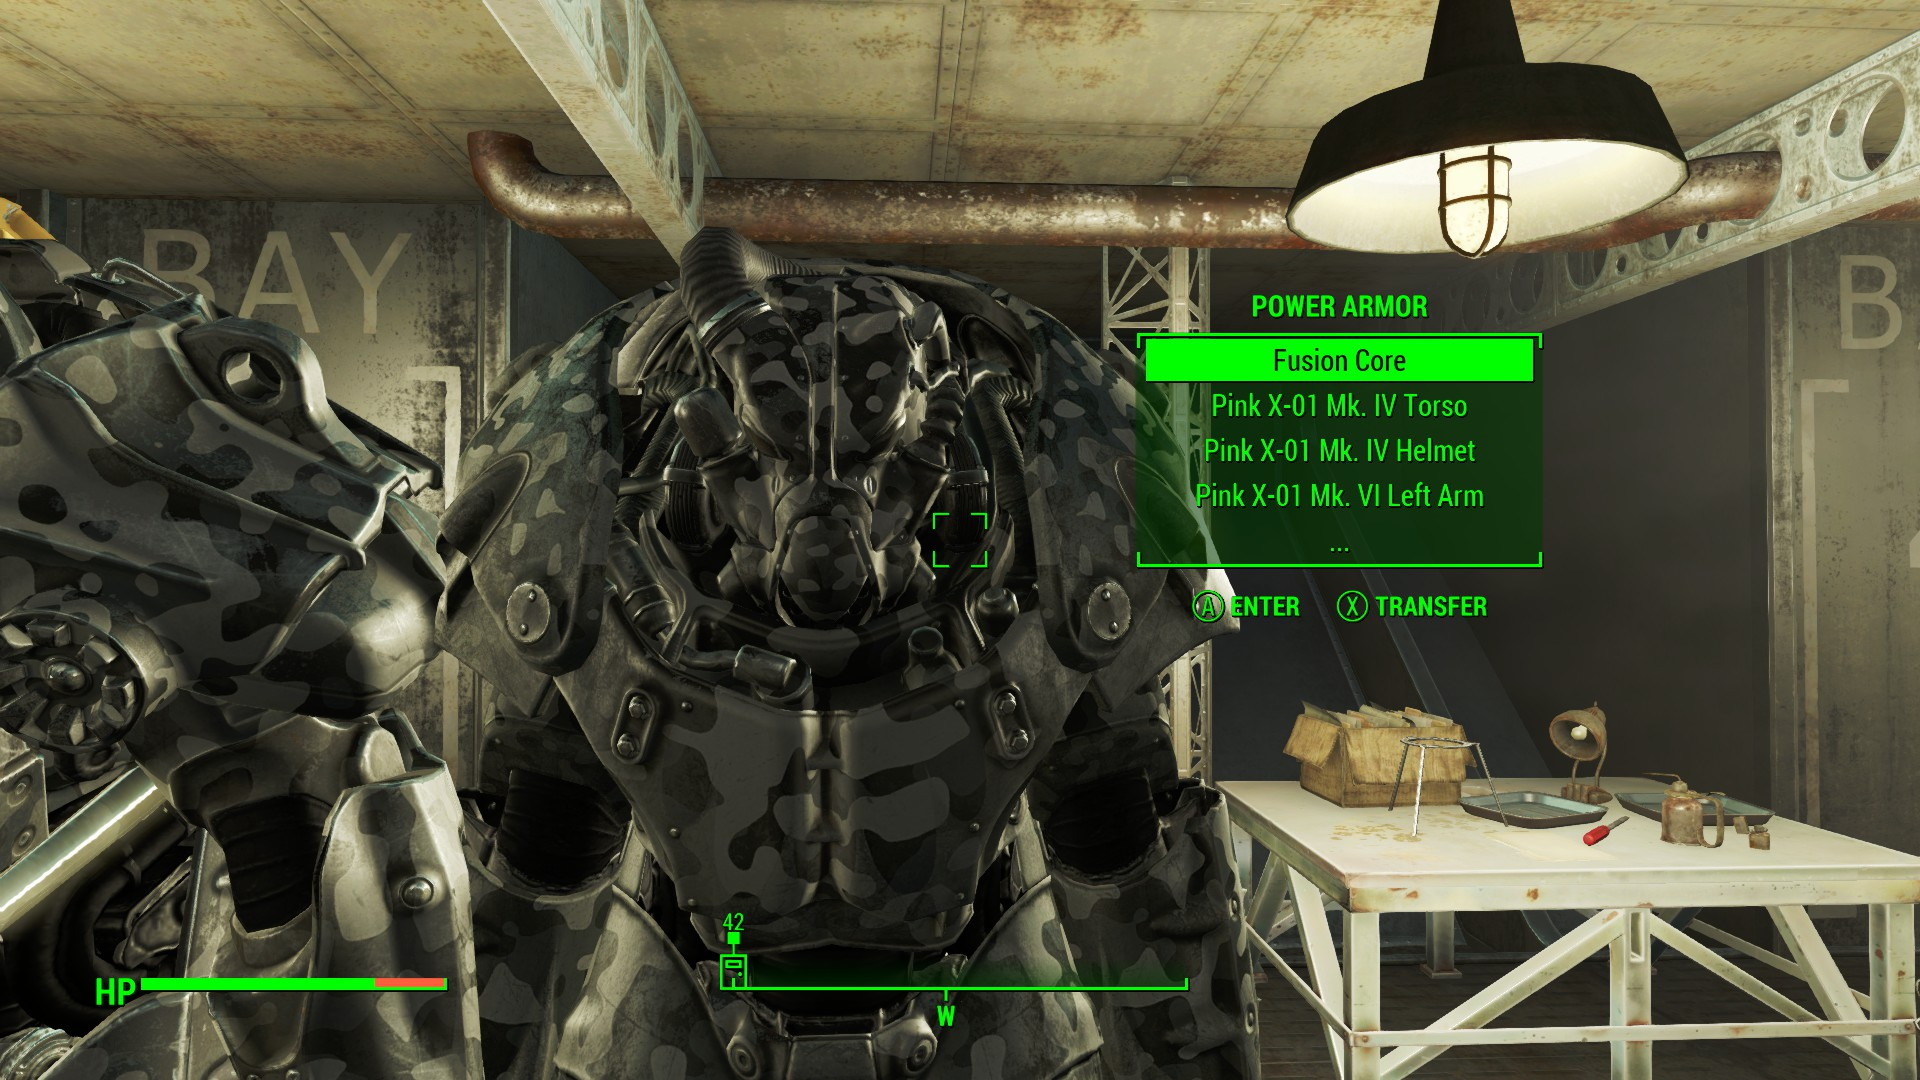 Paint-Concrete-Camo-replace-Hot-Pink-for-all-power-armor-7.jpg - Fallout 4 Скин